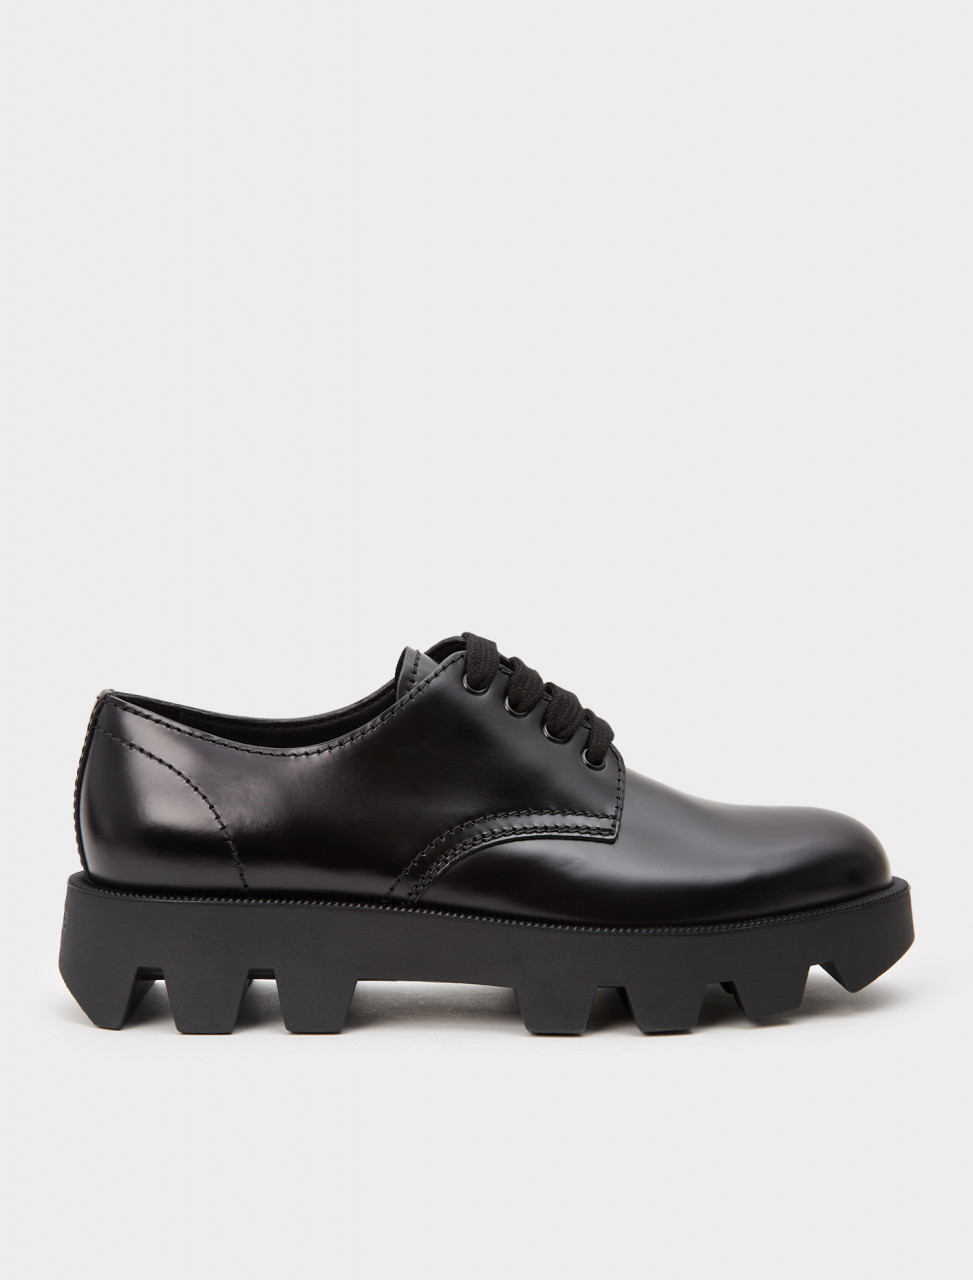 2EE332-F0002 PRADA ROCKSAND BRUSHED LEATHER LACE UP SHOES BLACK